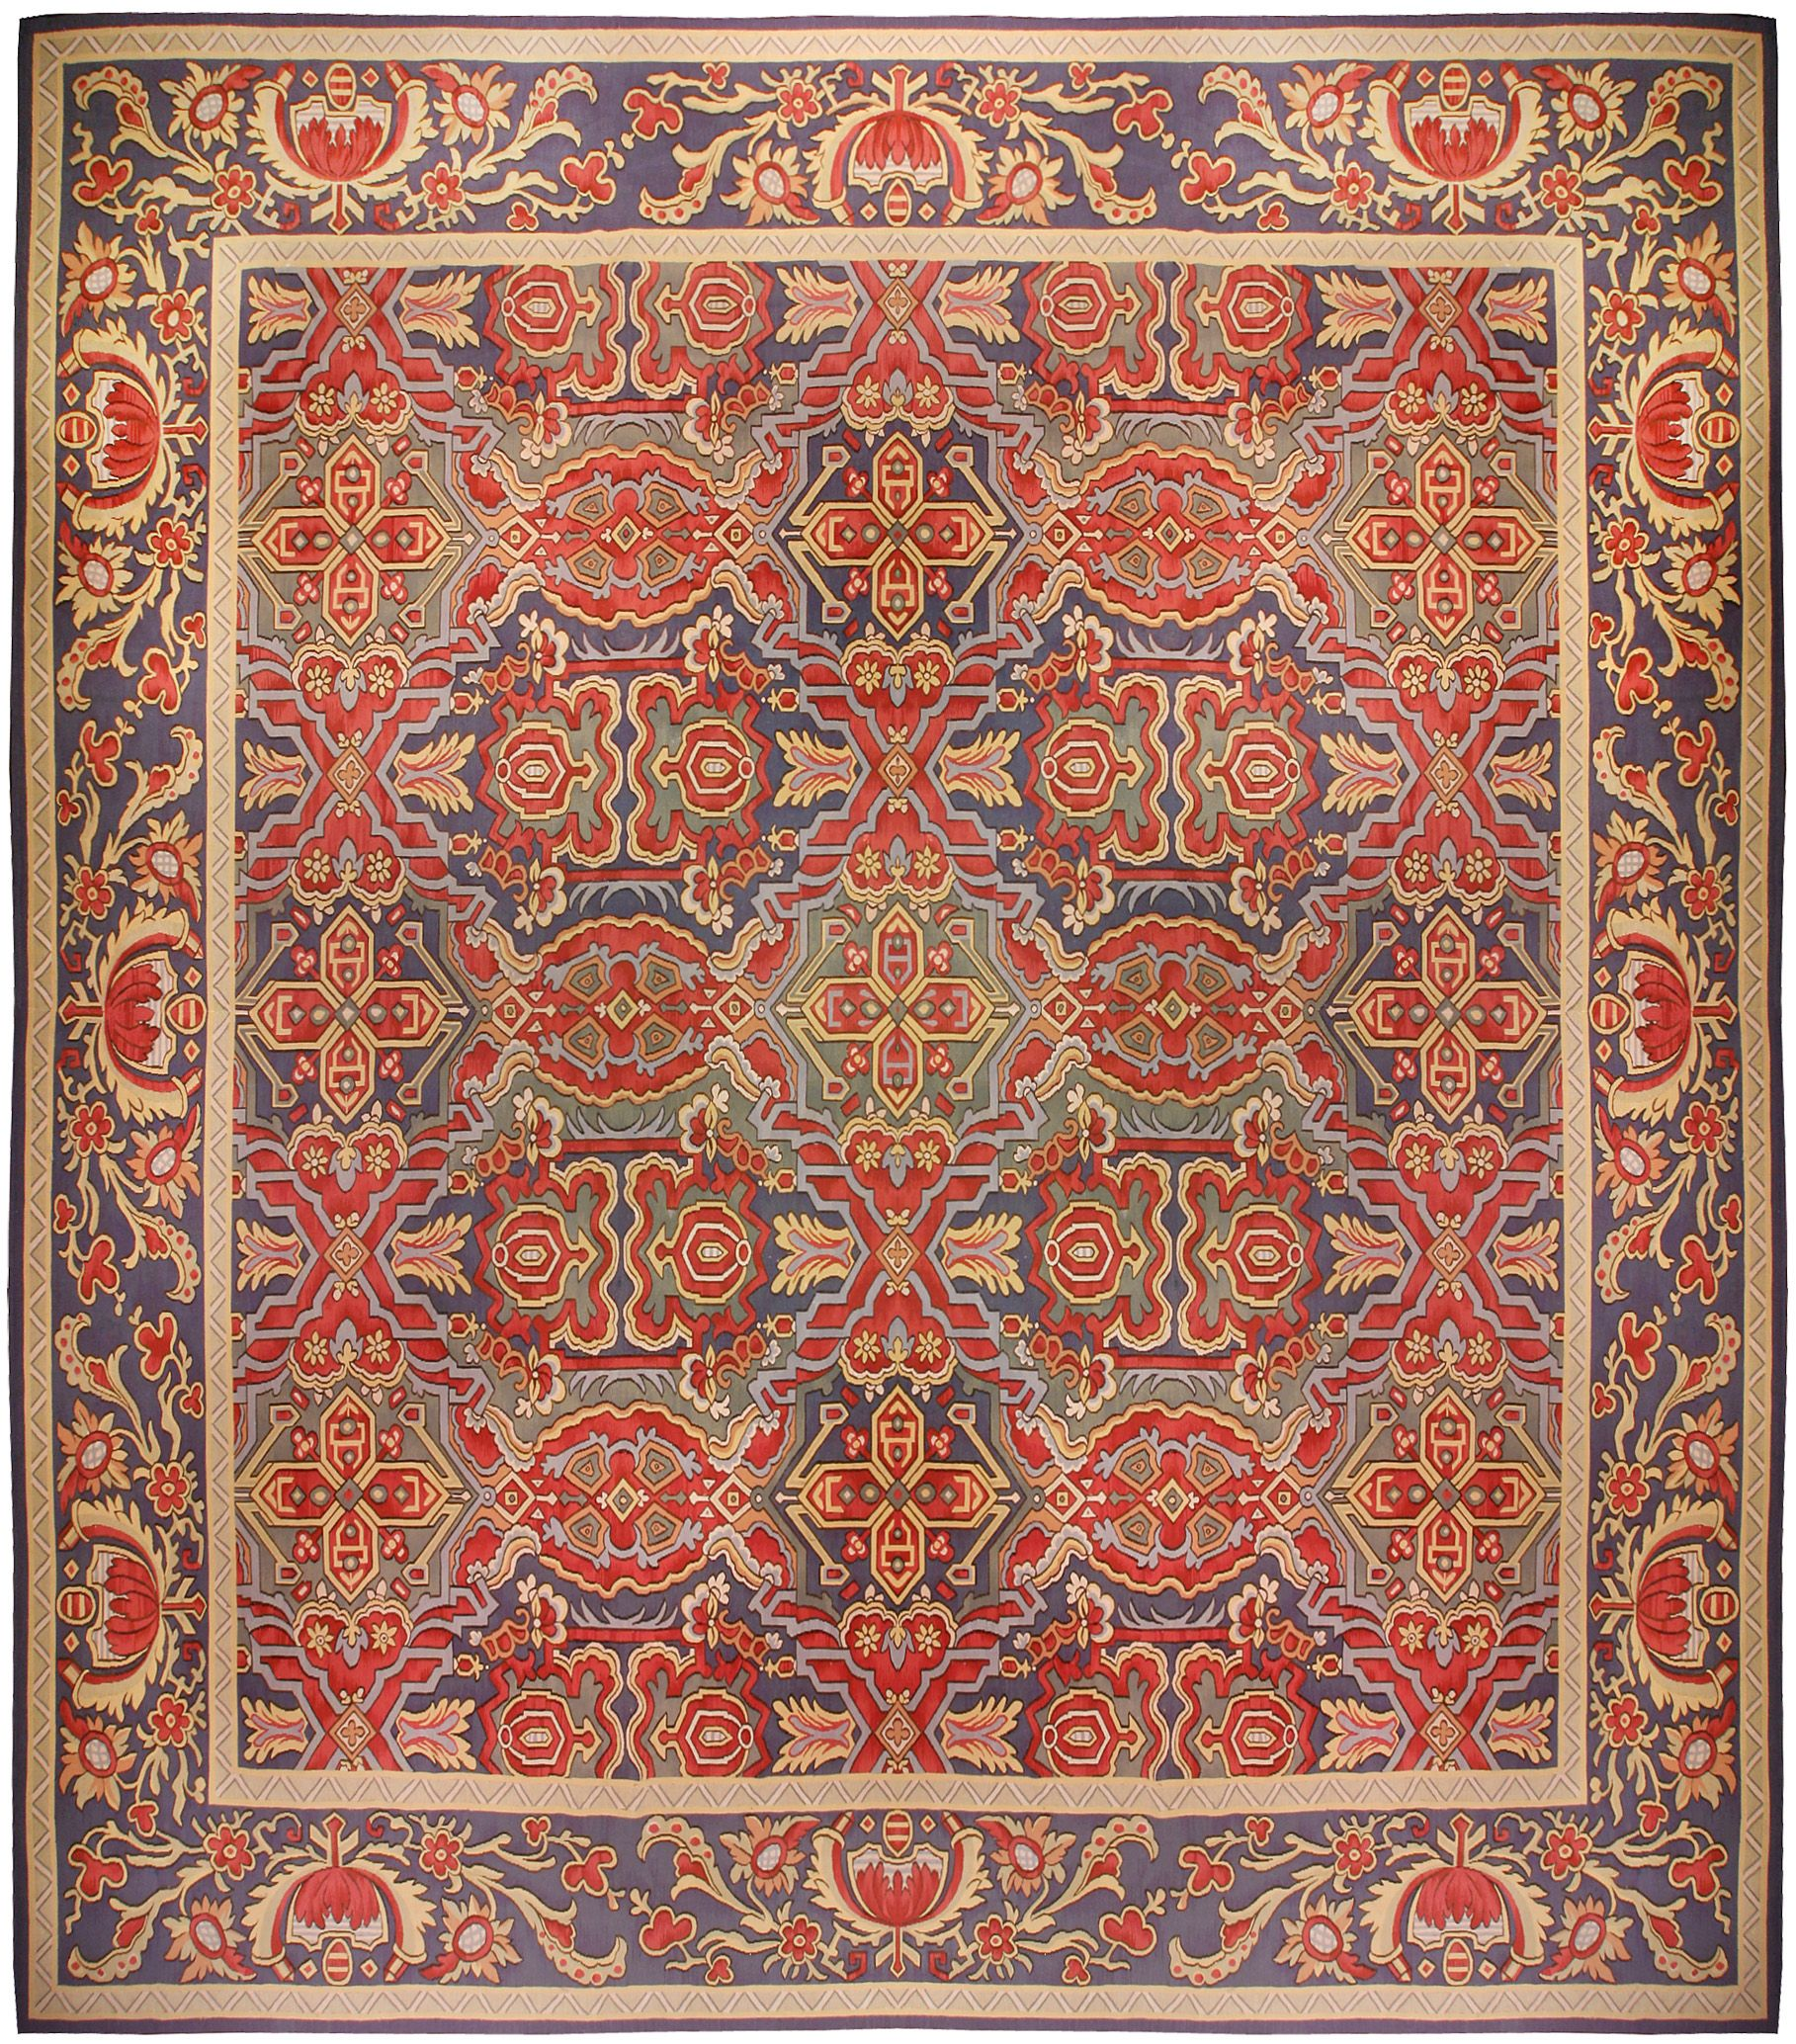 a european antique rug. perfect choice for traditional interiors